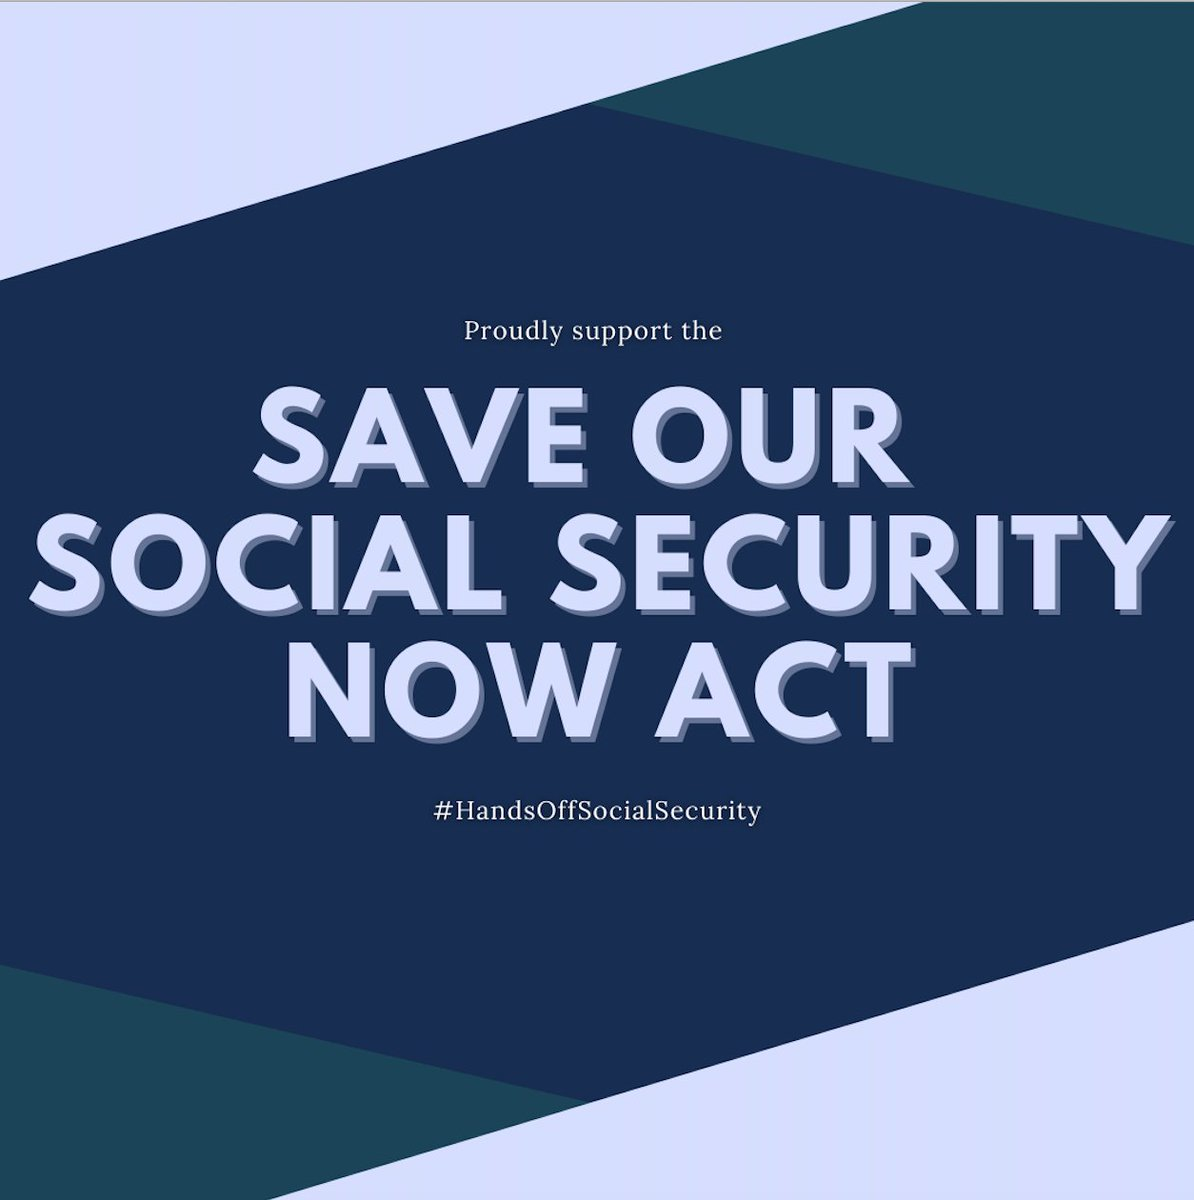 I will always fight to protect our countrys most reliable retirement and insurance plan- #SocialSecurity. I am proud to support #SocialSecurity2100 and the #SaveOurSocialSecurityNow Act to protect this program workers pay into with every paycheck.